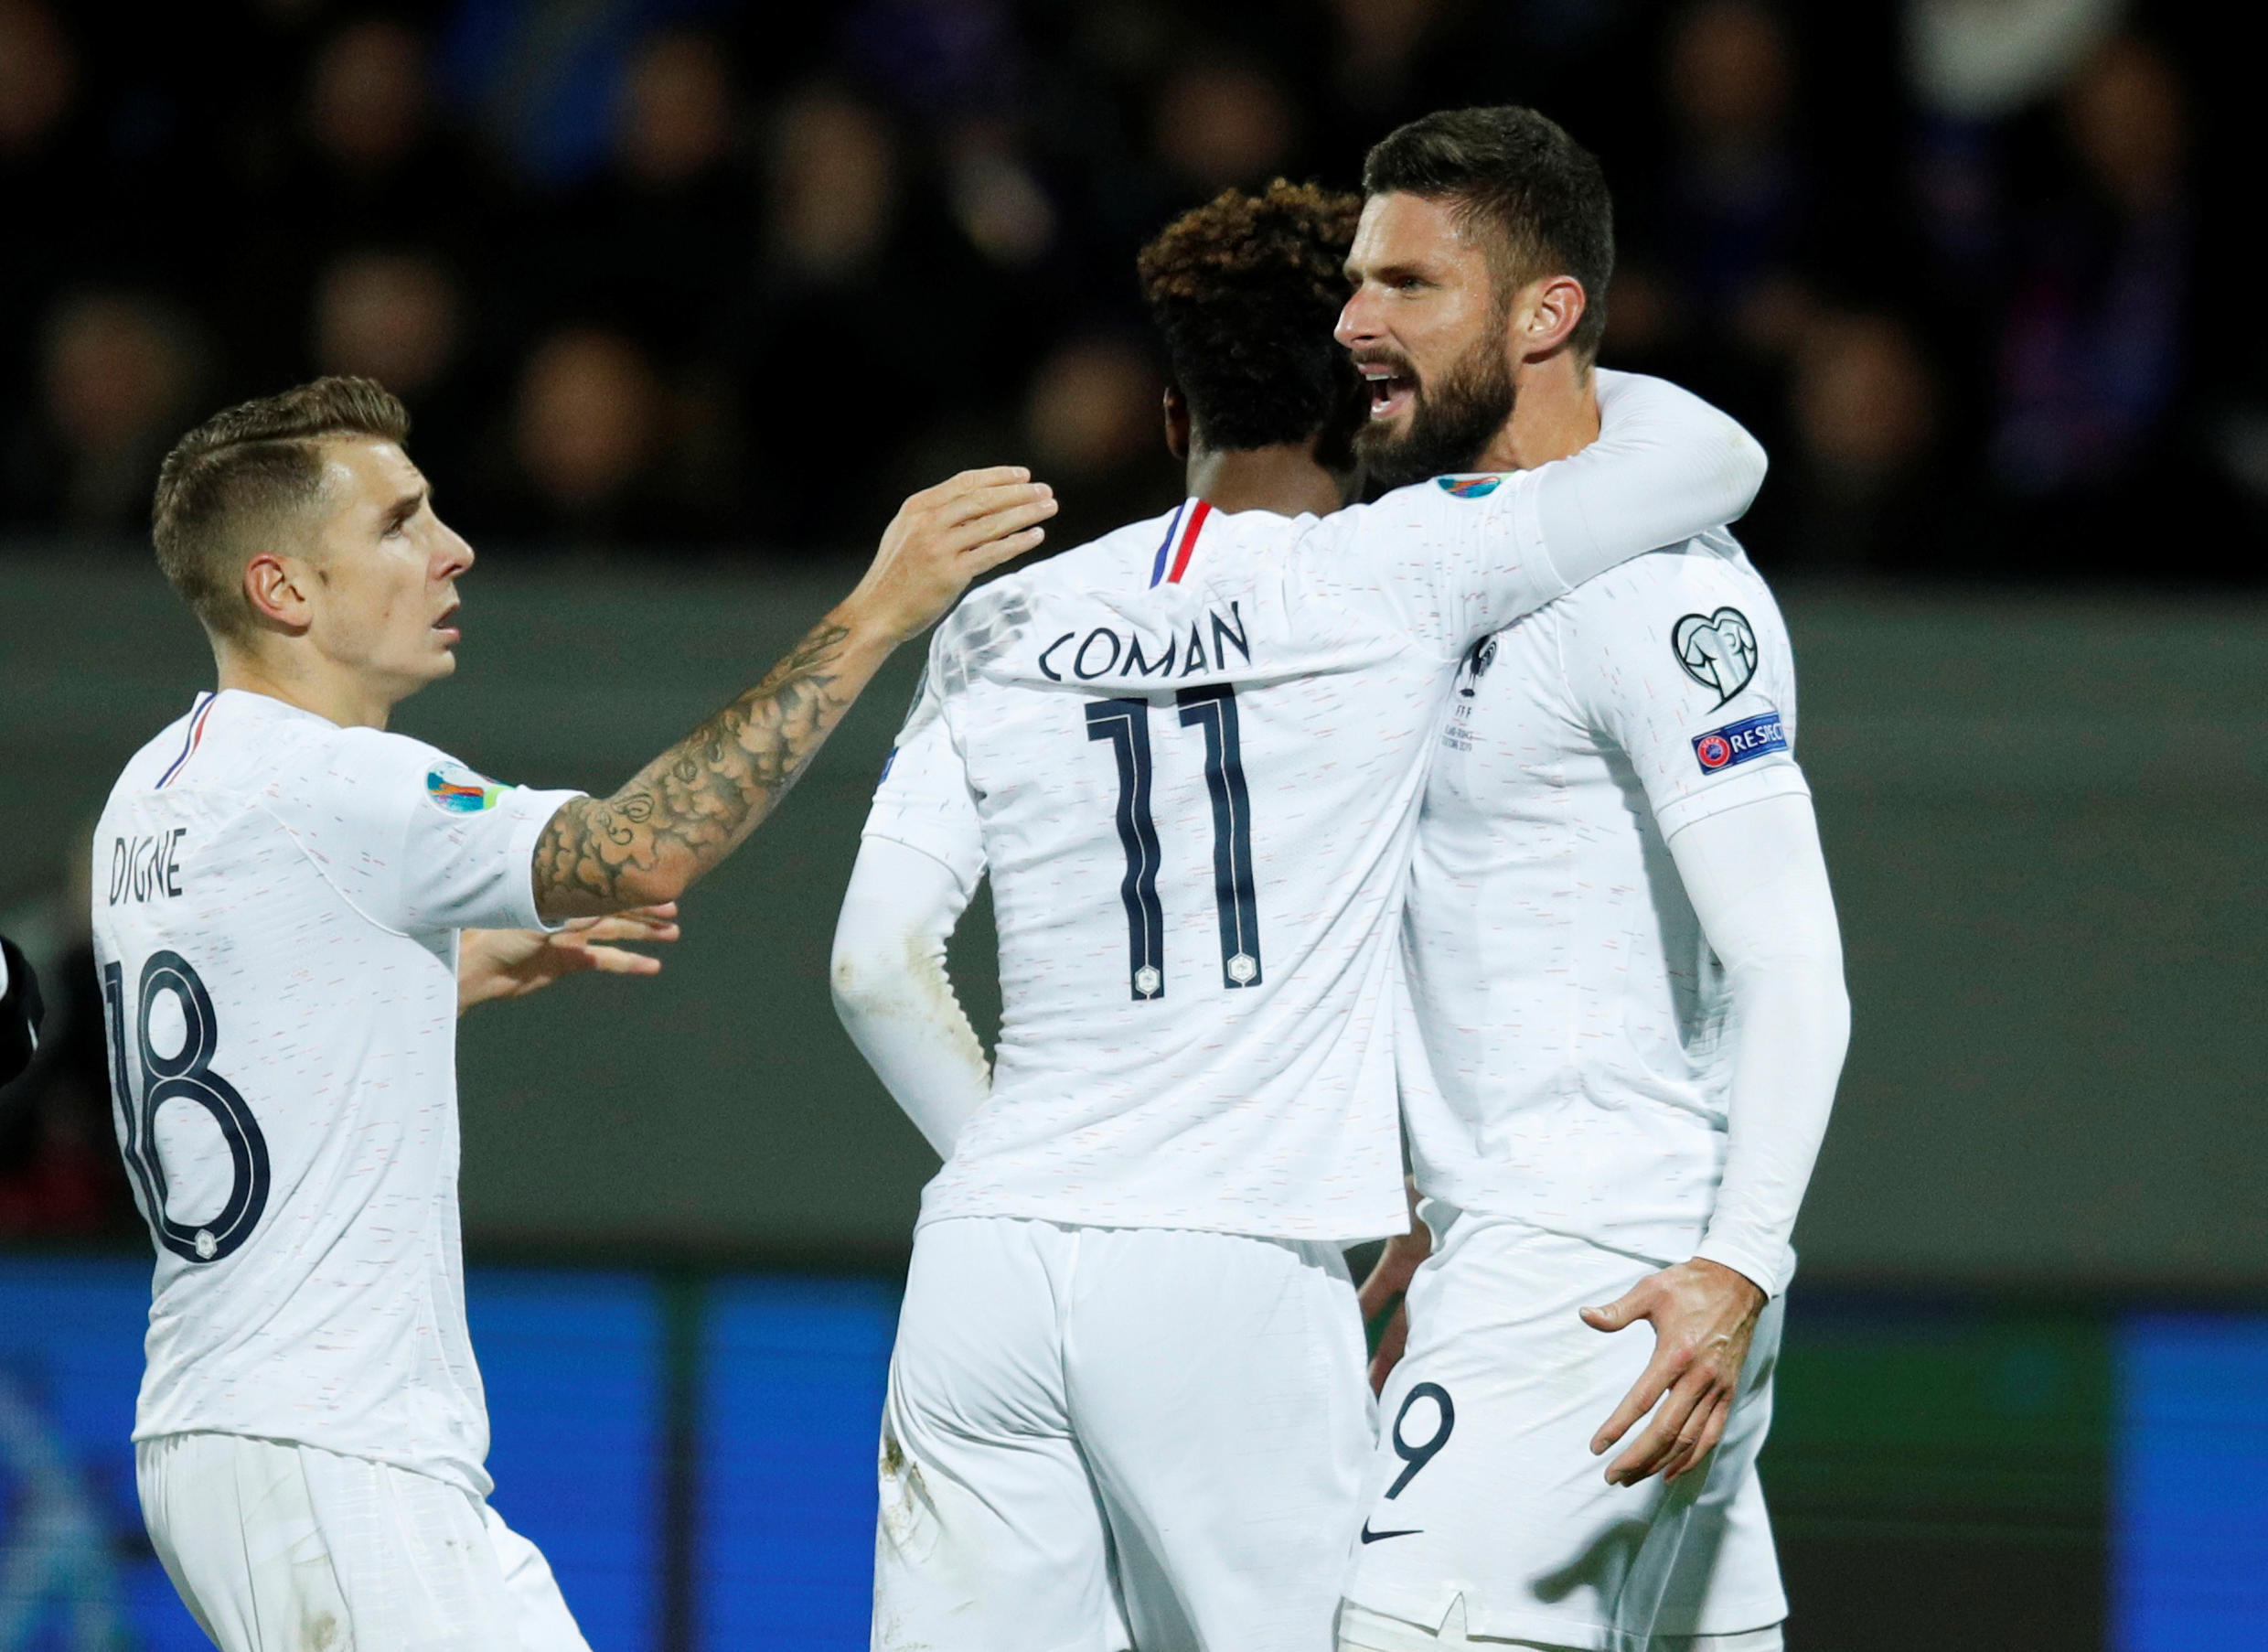 France's Olivier Giroud celebrates scoring their first goal with Kingsley Coman and Lucas Digne, at Euro 2020 qualifying match in Reykjavik, 11 October 2019